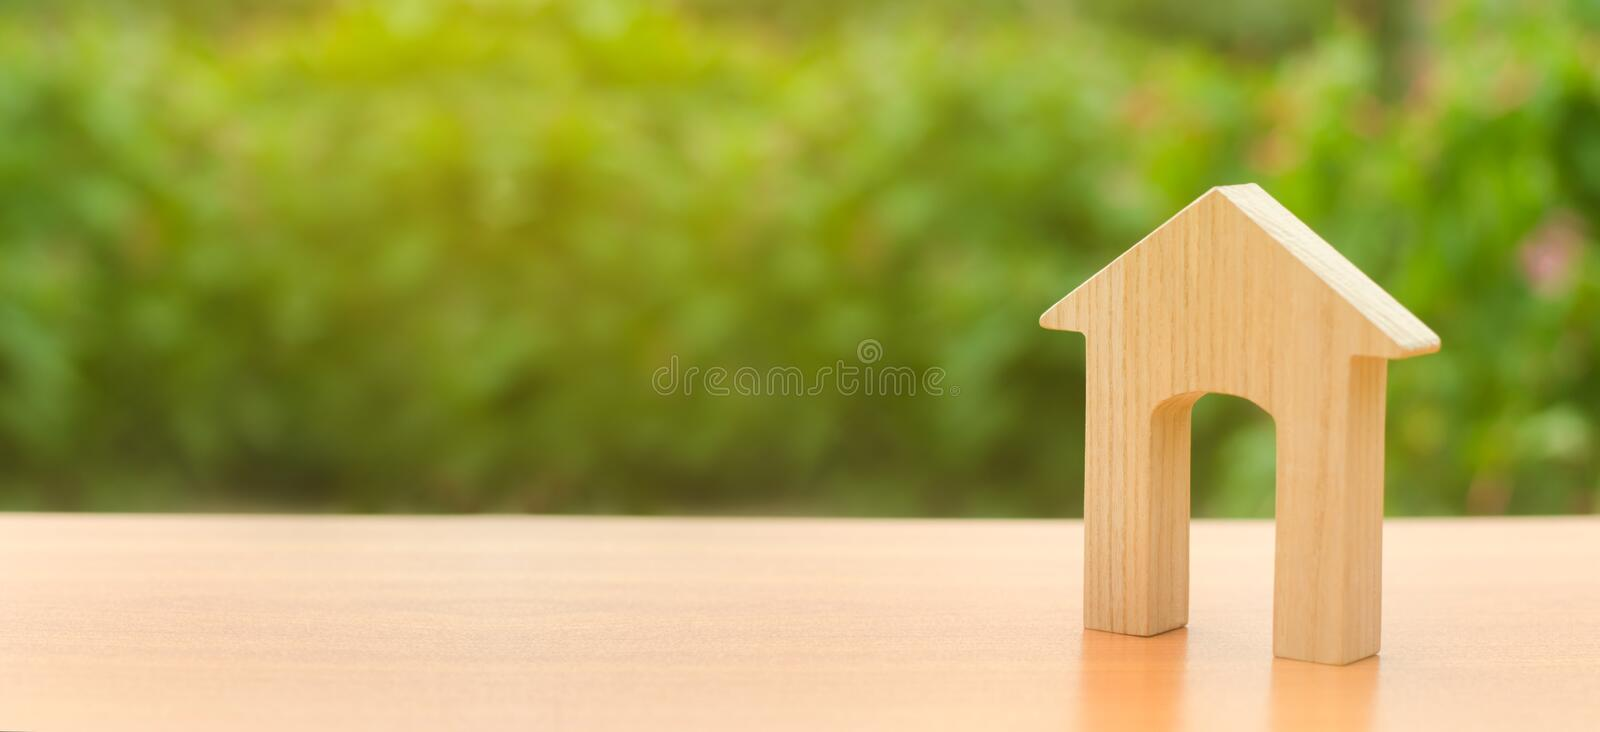 Wooden figure of a house with a large doorway on nature background. concept of buying and selling real estate, rent, investment. Home, Affordable housing royalty free stock image